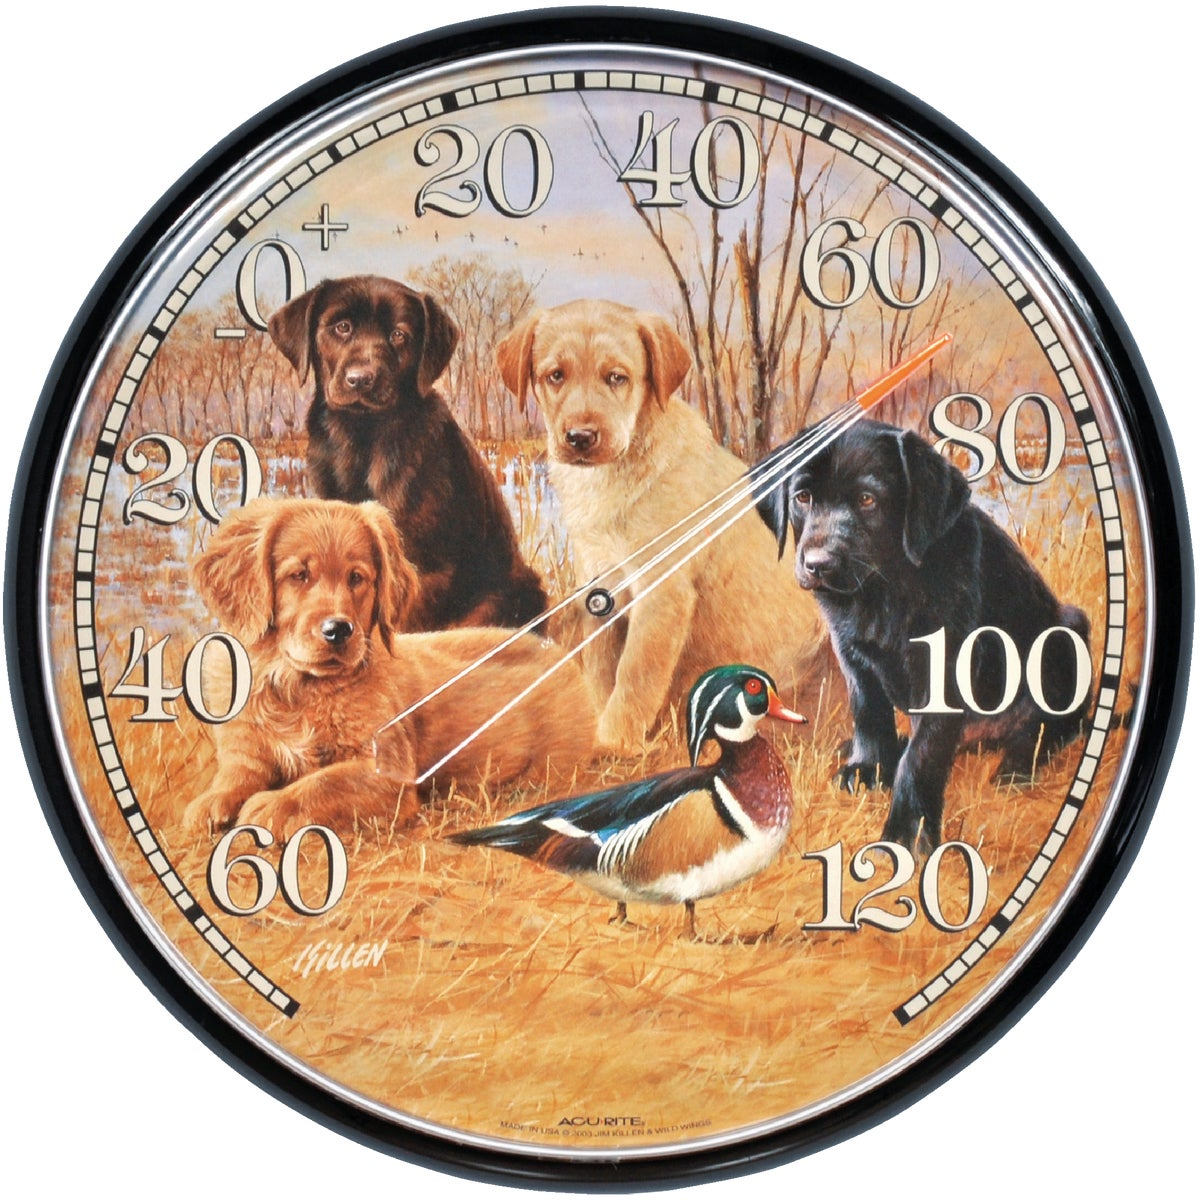 PUPPIES THERMOMETER - 01712 by Chaney Instrument Co